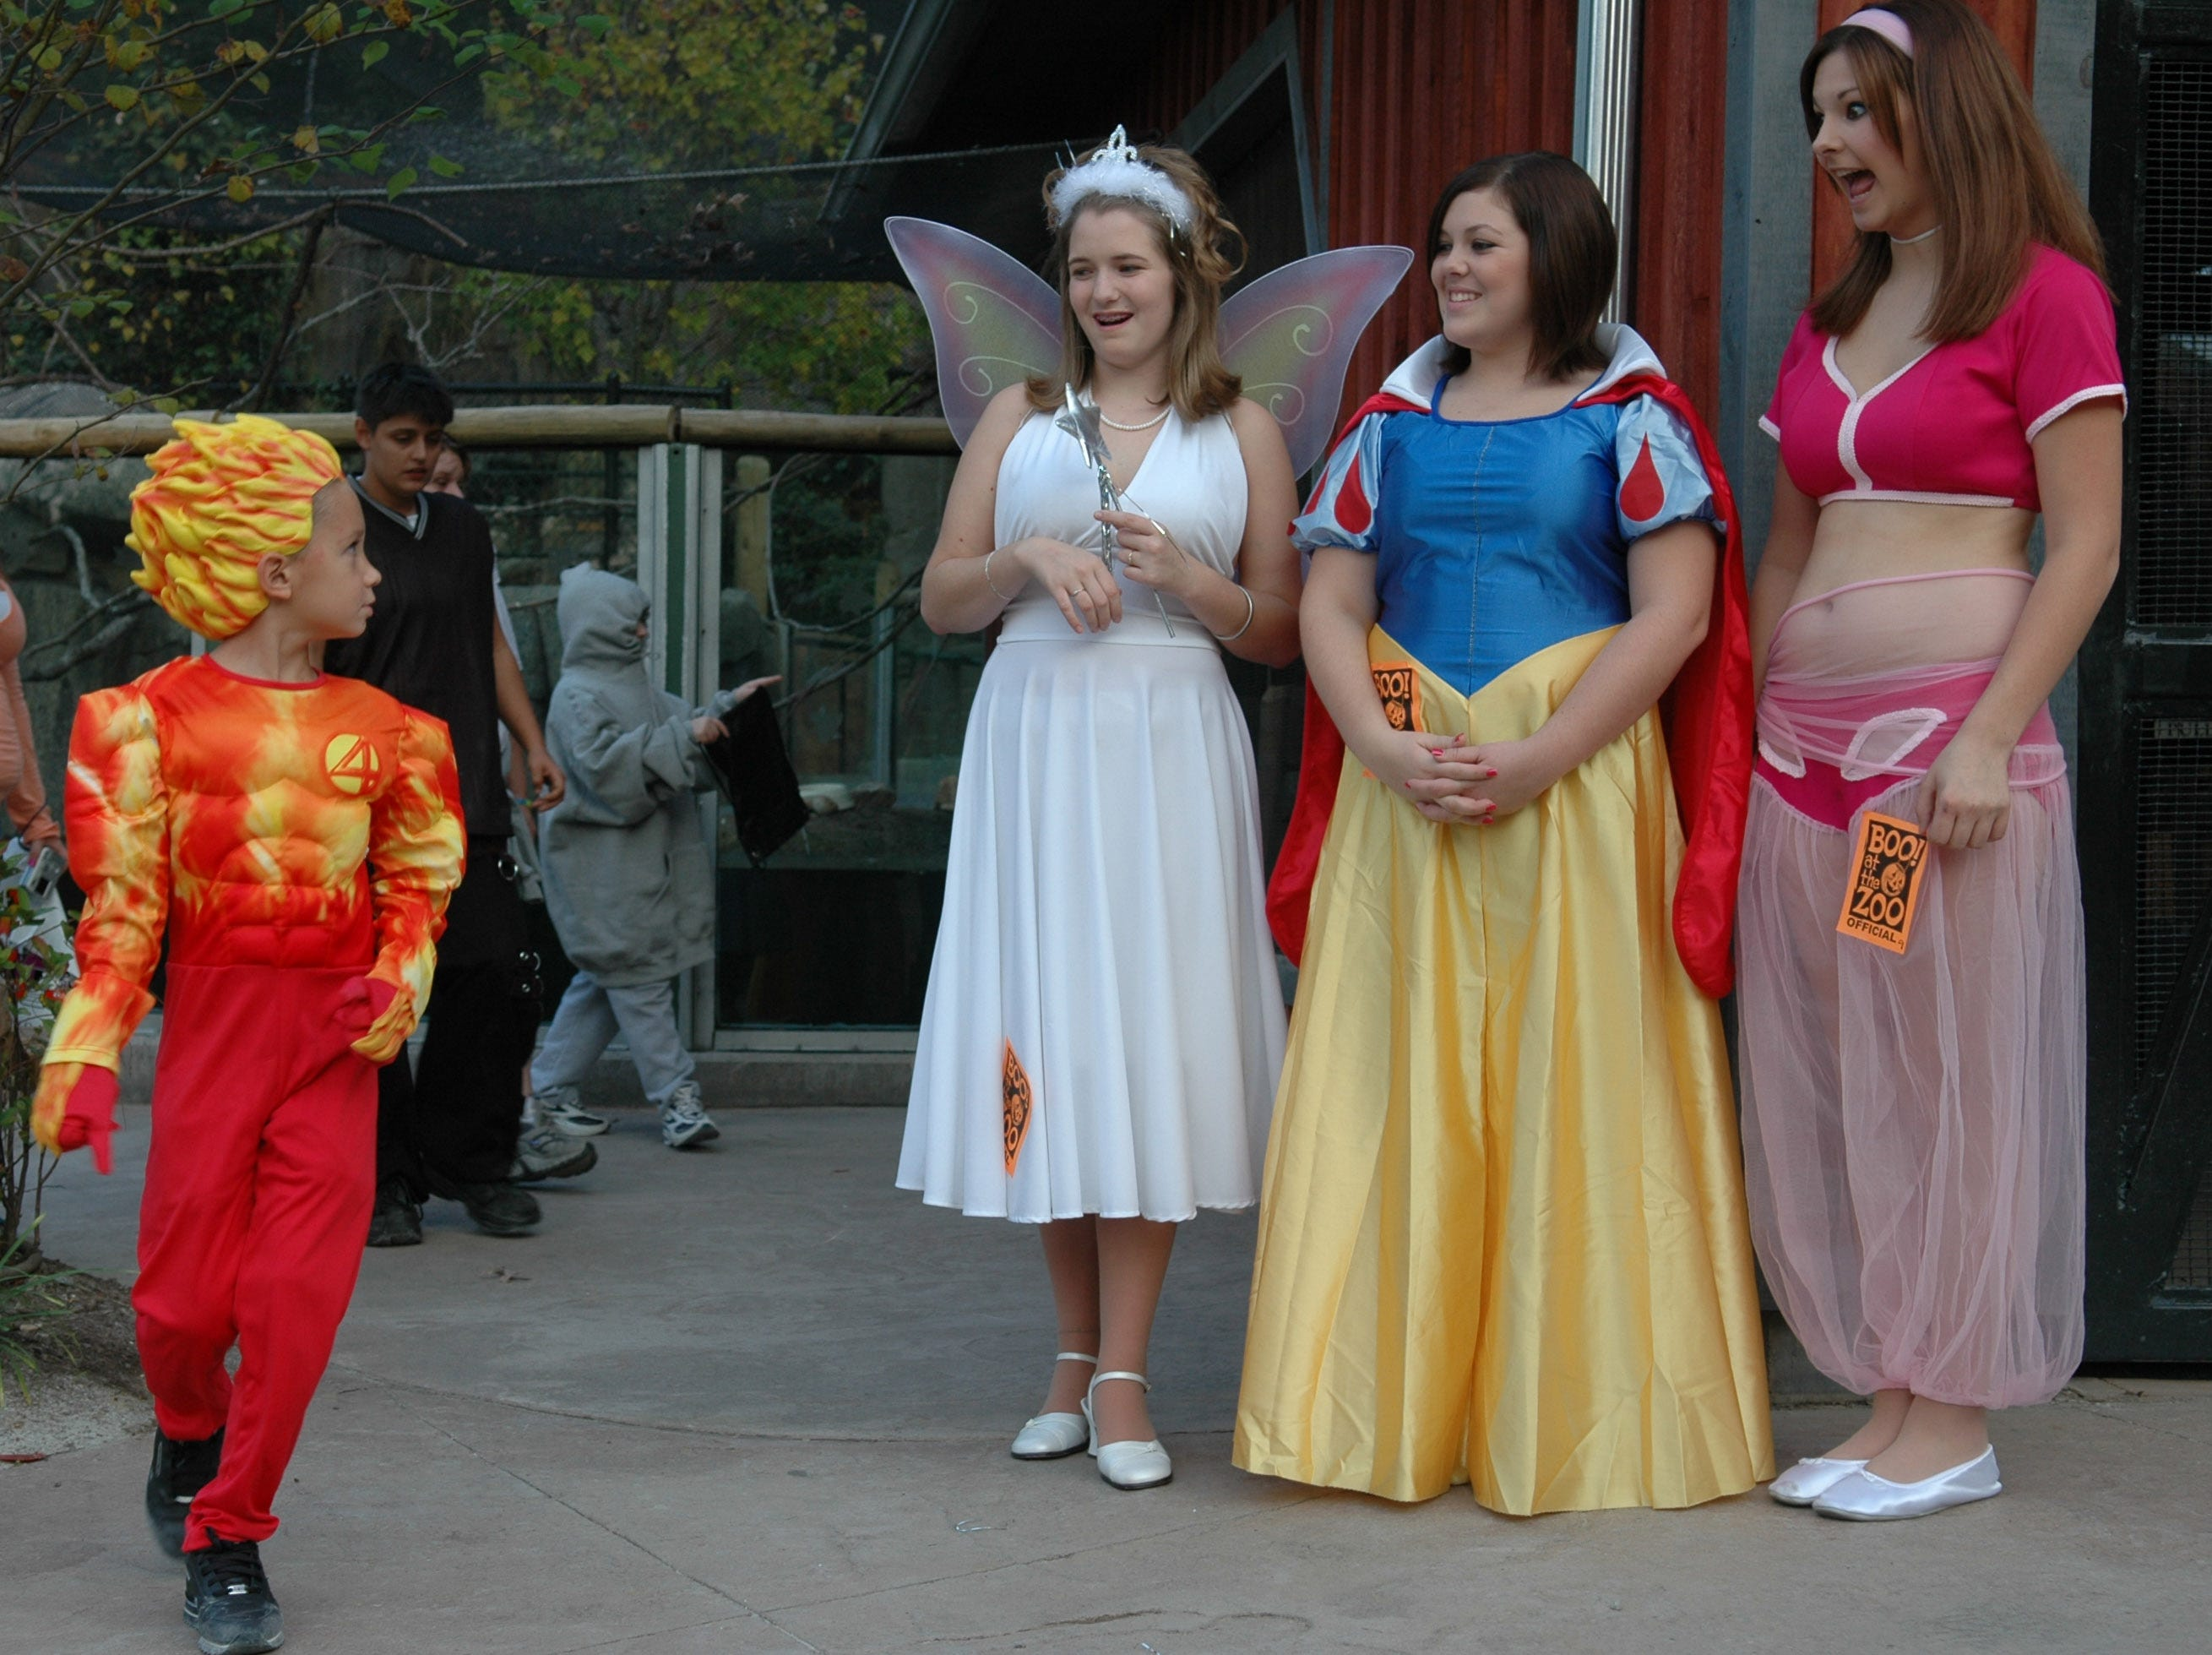 Justin Hurst, 6, of Knoxville, dressed in his Human Torch halloween costume, is surprised as he rounds the corner to be greeted by volunteers (from left), Julie Wood dressed as the fairy godmother, Kayla Shoffner dressed as Snow White, and Chason Washam, dressed as Jeannie while visiting the Knoxville Zoo for Boo at the Zoo Thursday night. 10/21/2005.